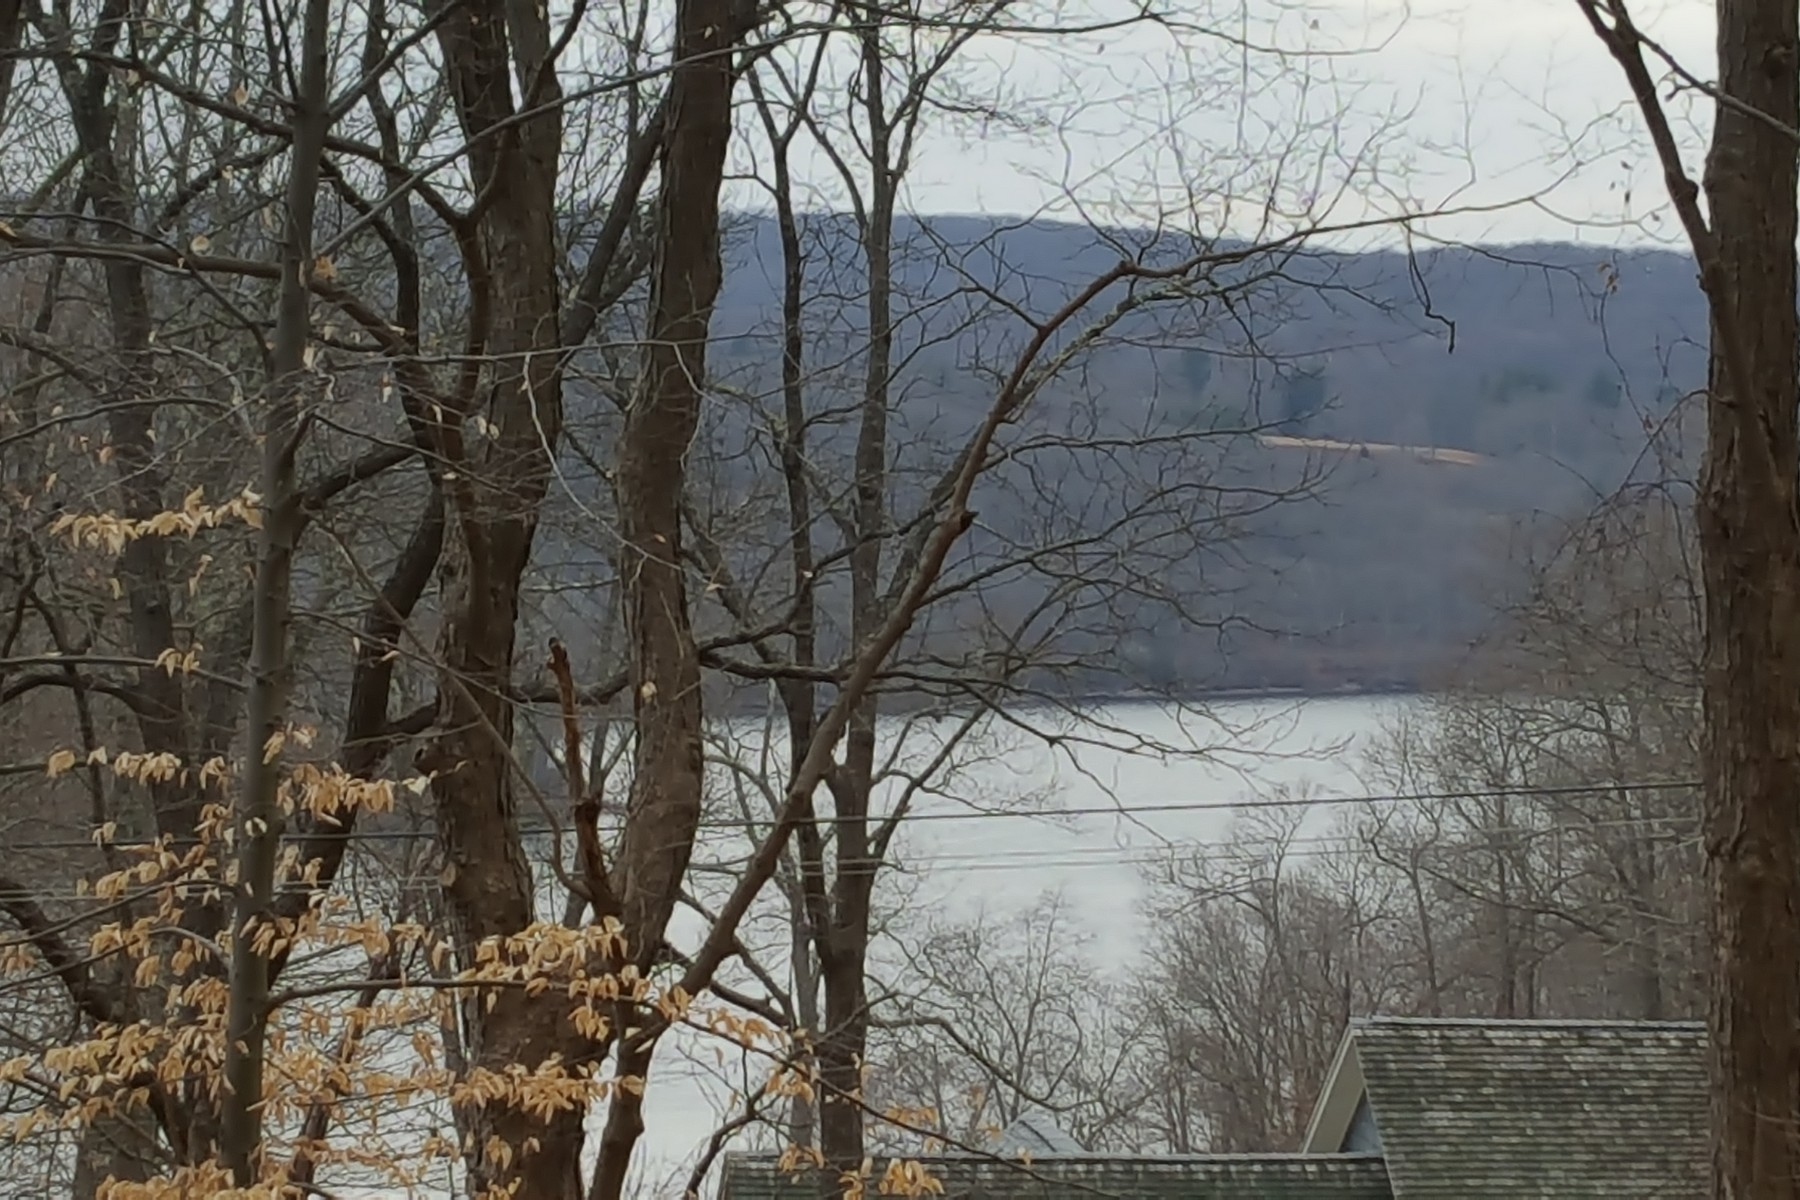 Land for Sale at Beautiful Lot, Great CT River Views! 141 Injun Hollow Rd Haddam, Connecticut 06438 United States